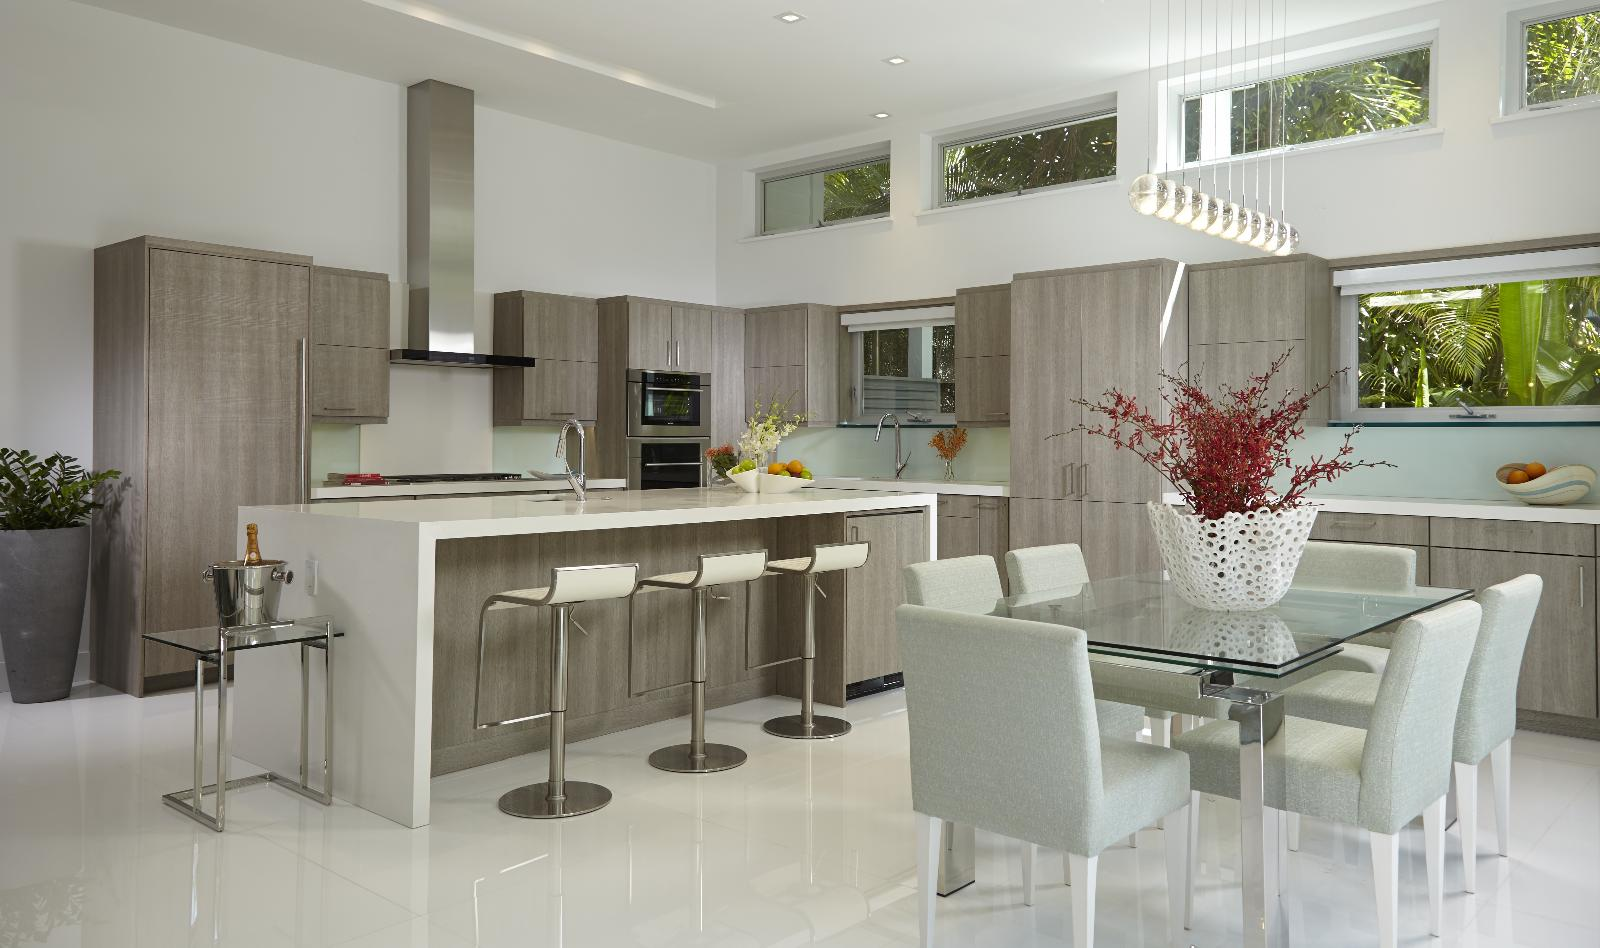 Kitchen Interior Design: Kitchen Interior Design Services Miami Florida